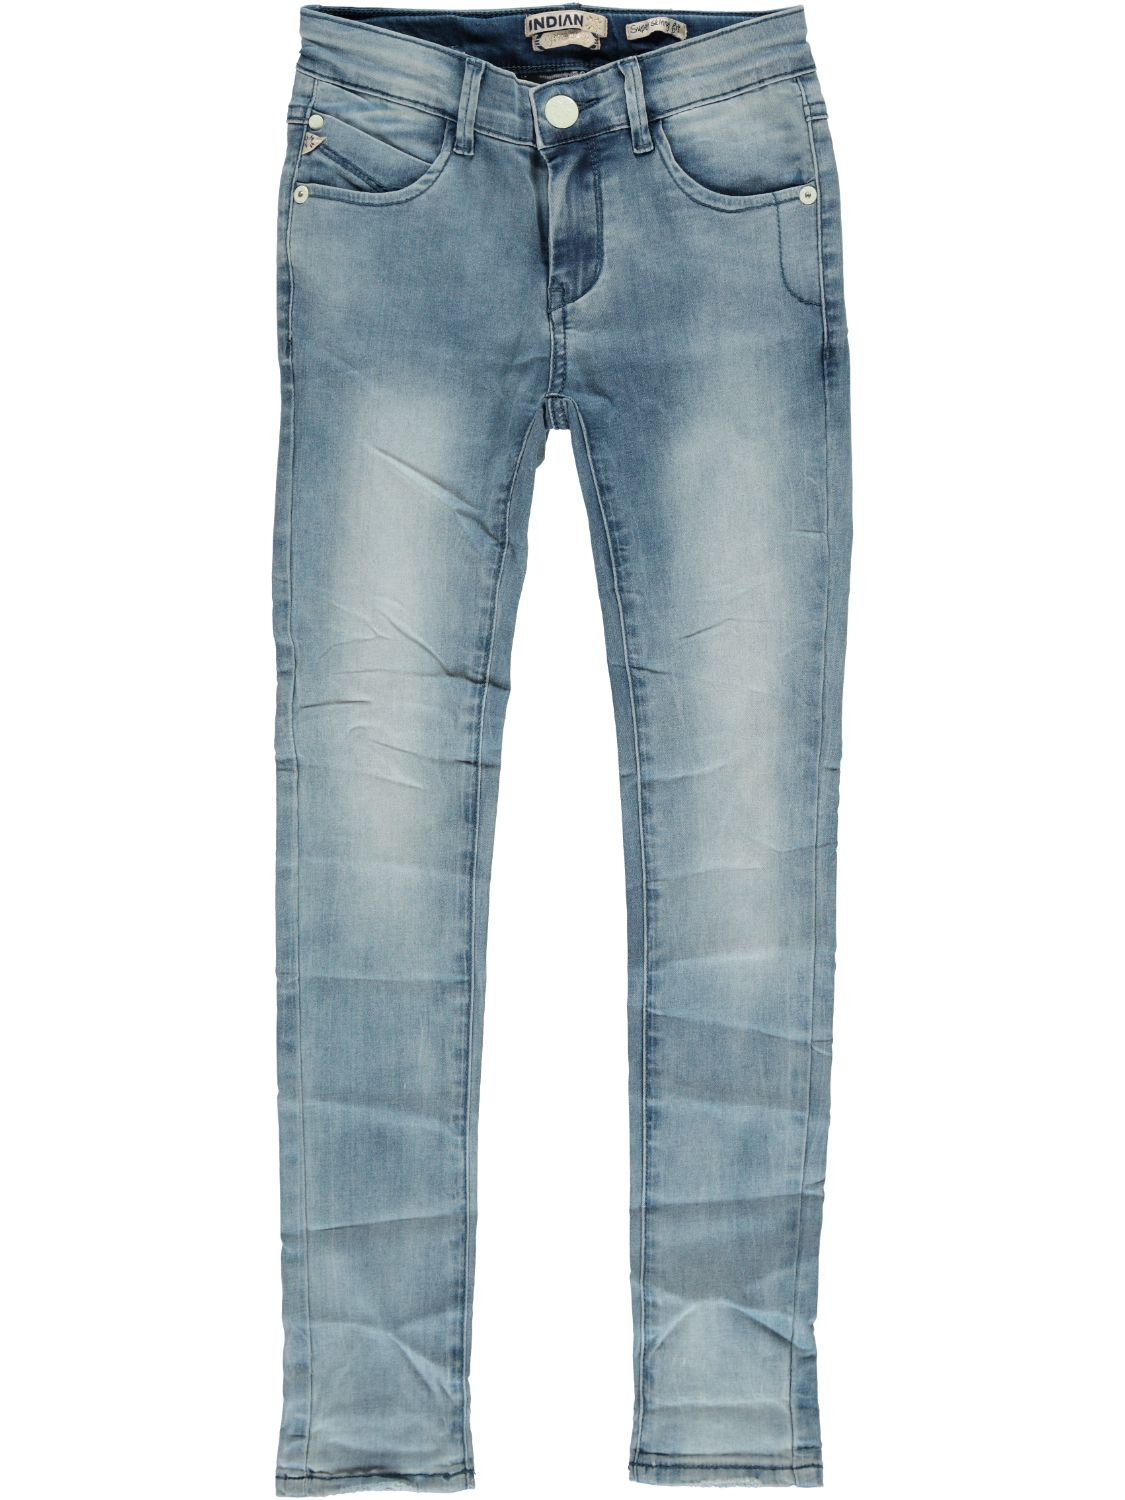 Indian Blue Jeans Lange broek